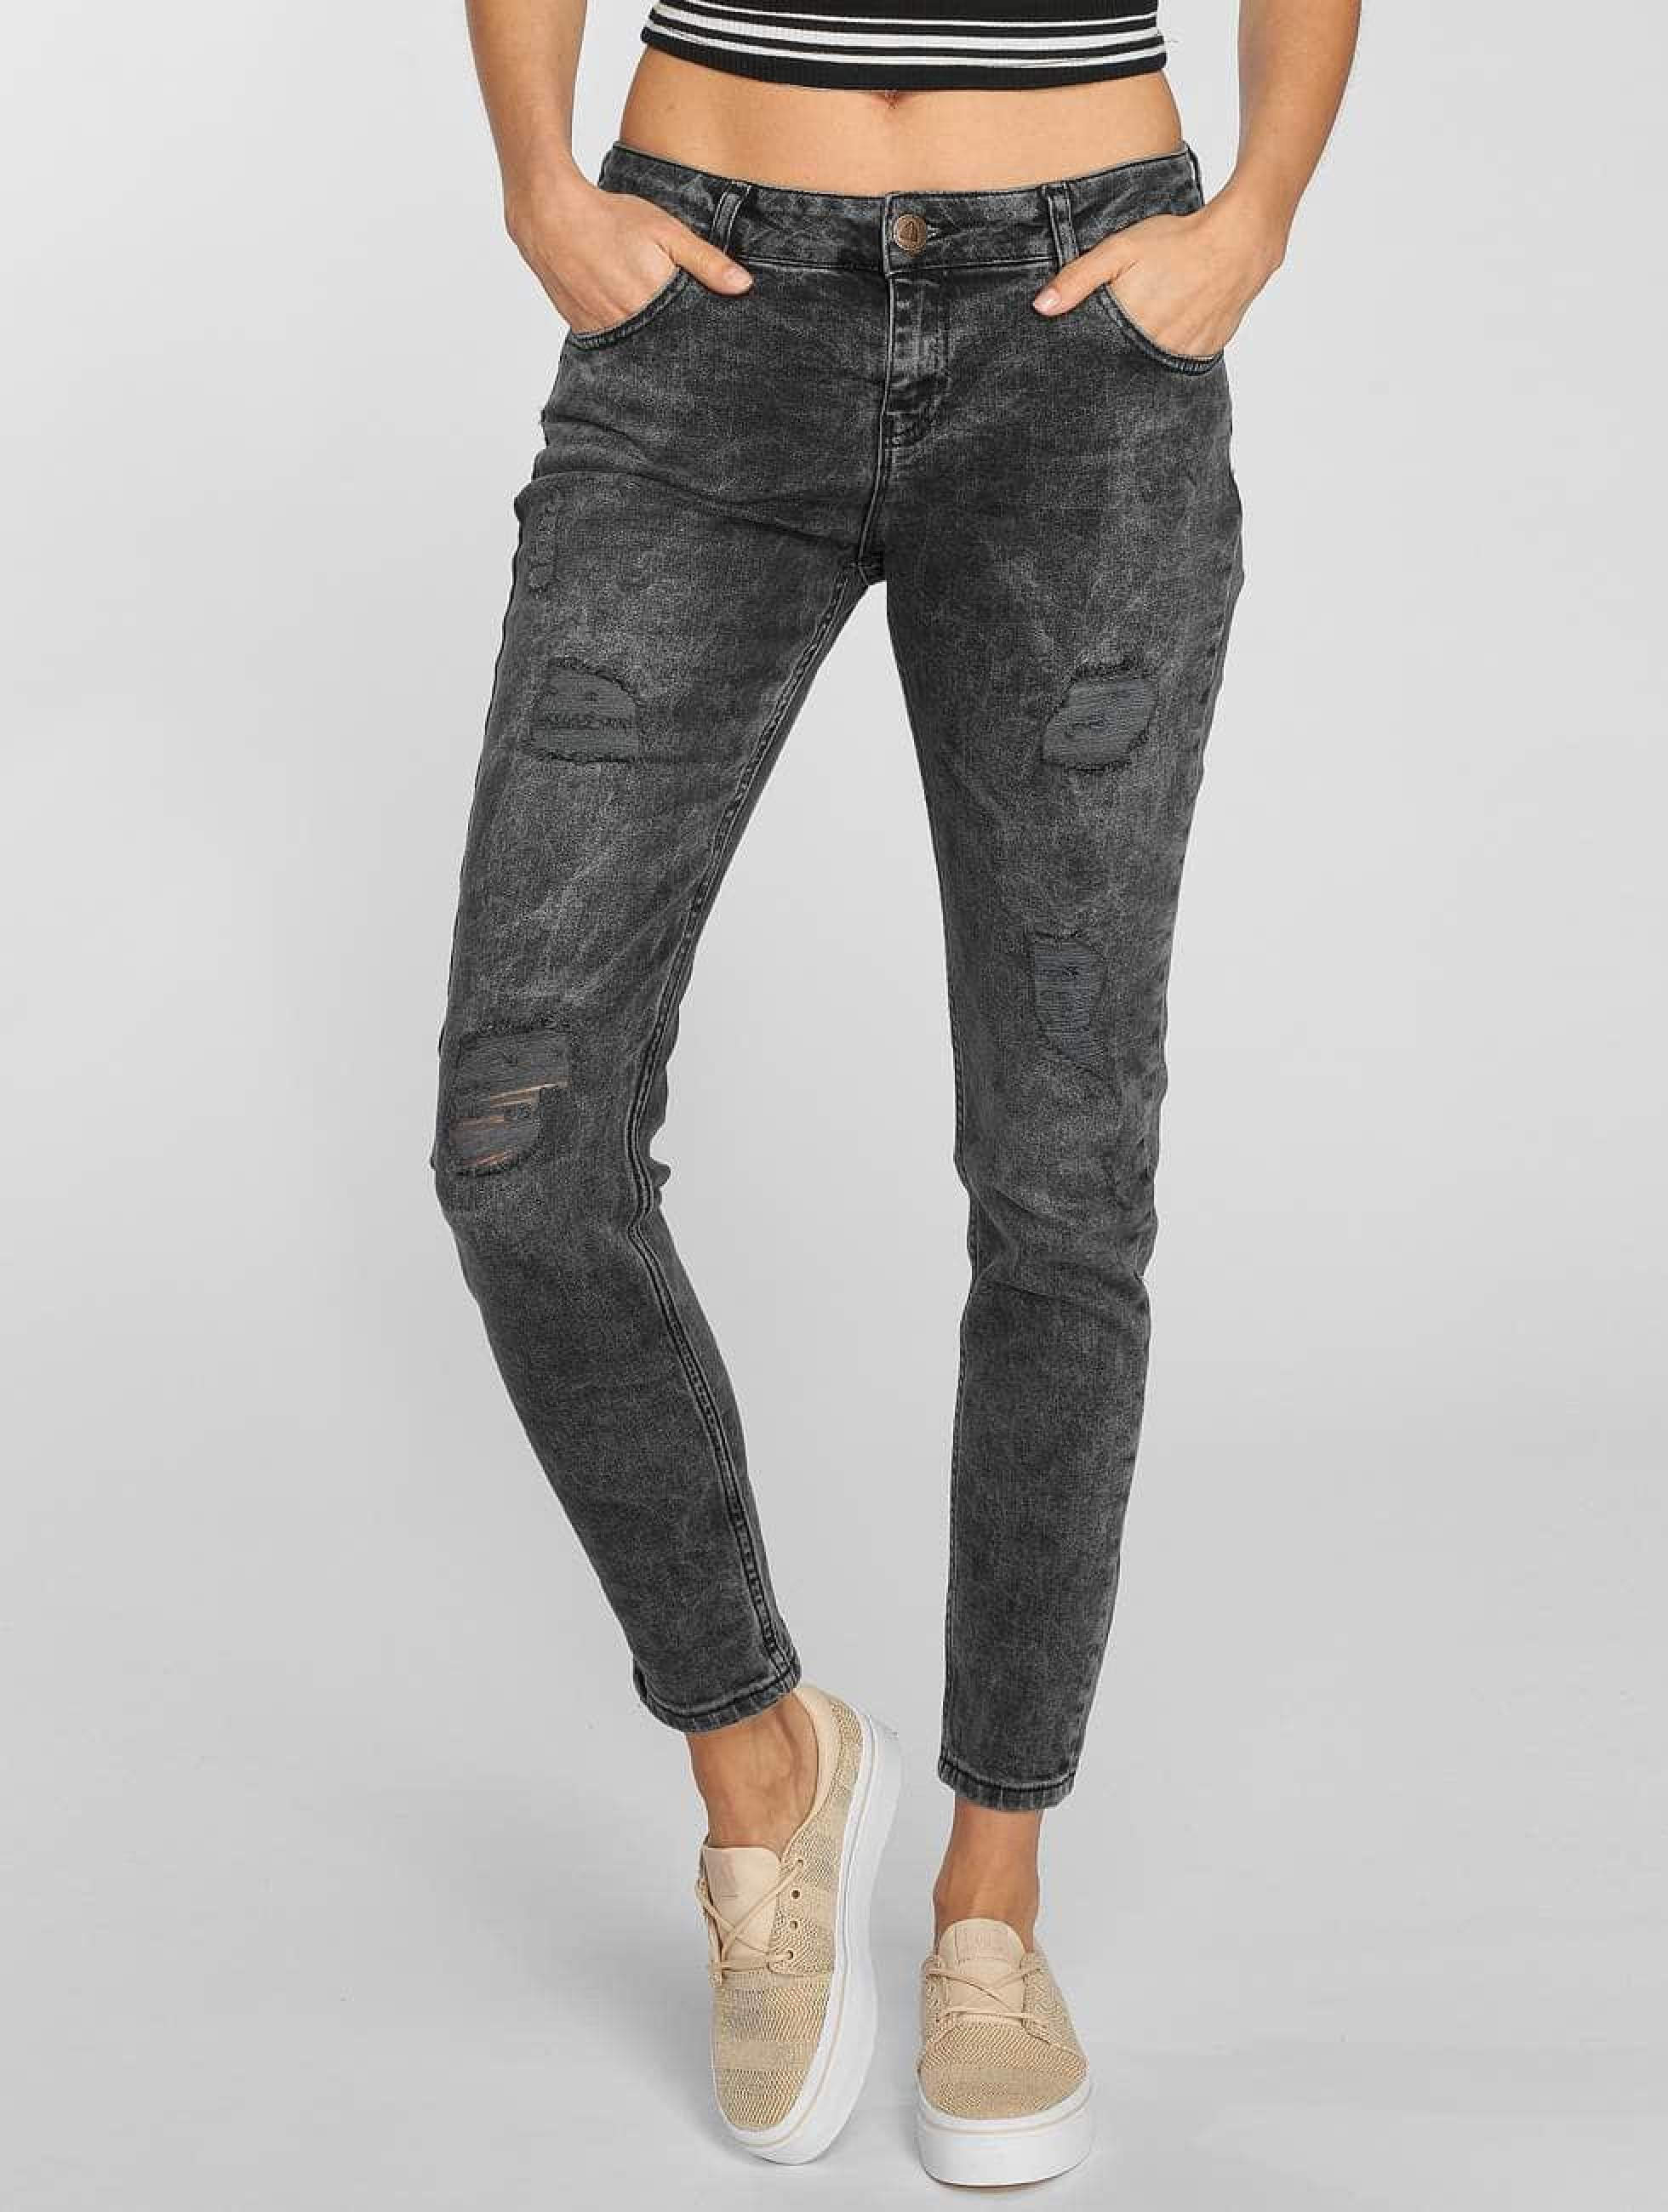 Just Rhyse / Boyfriend Jeans Bubbles in grey S